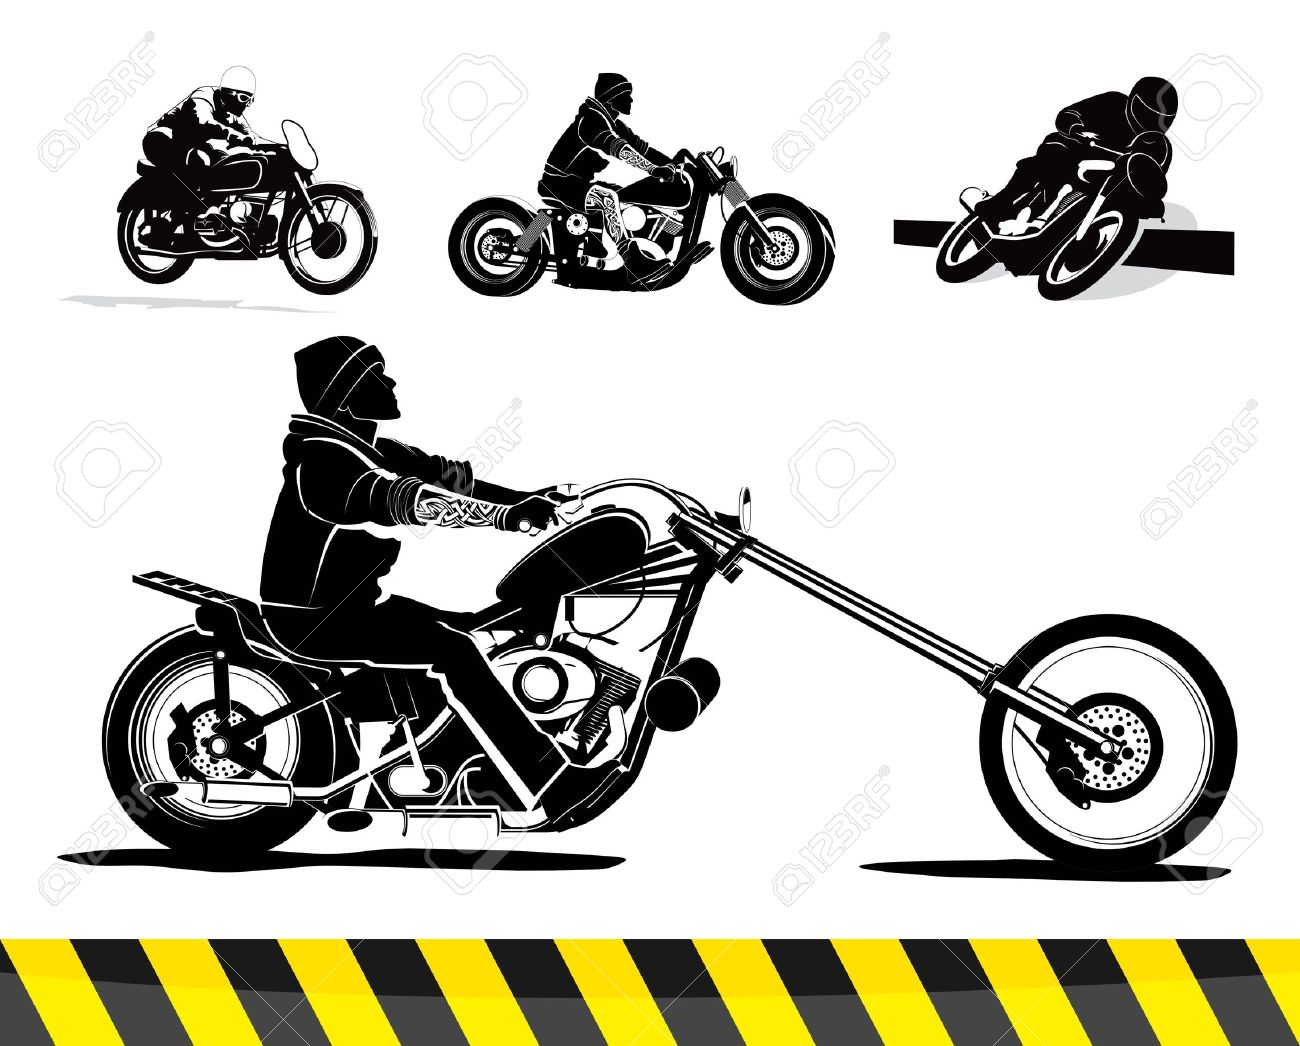 free vintage motorcycle images  Vintage Motorcycle Vector Background Illustration Royalty Free ...